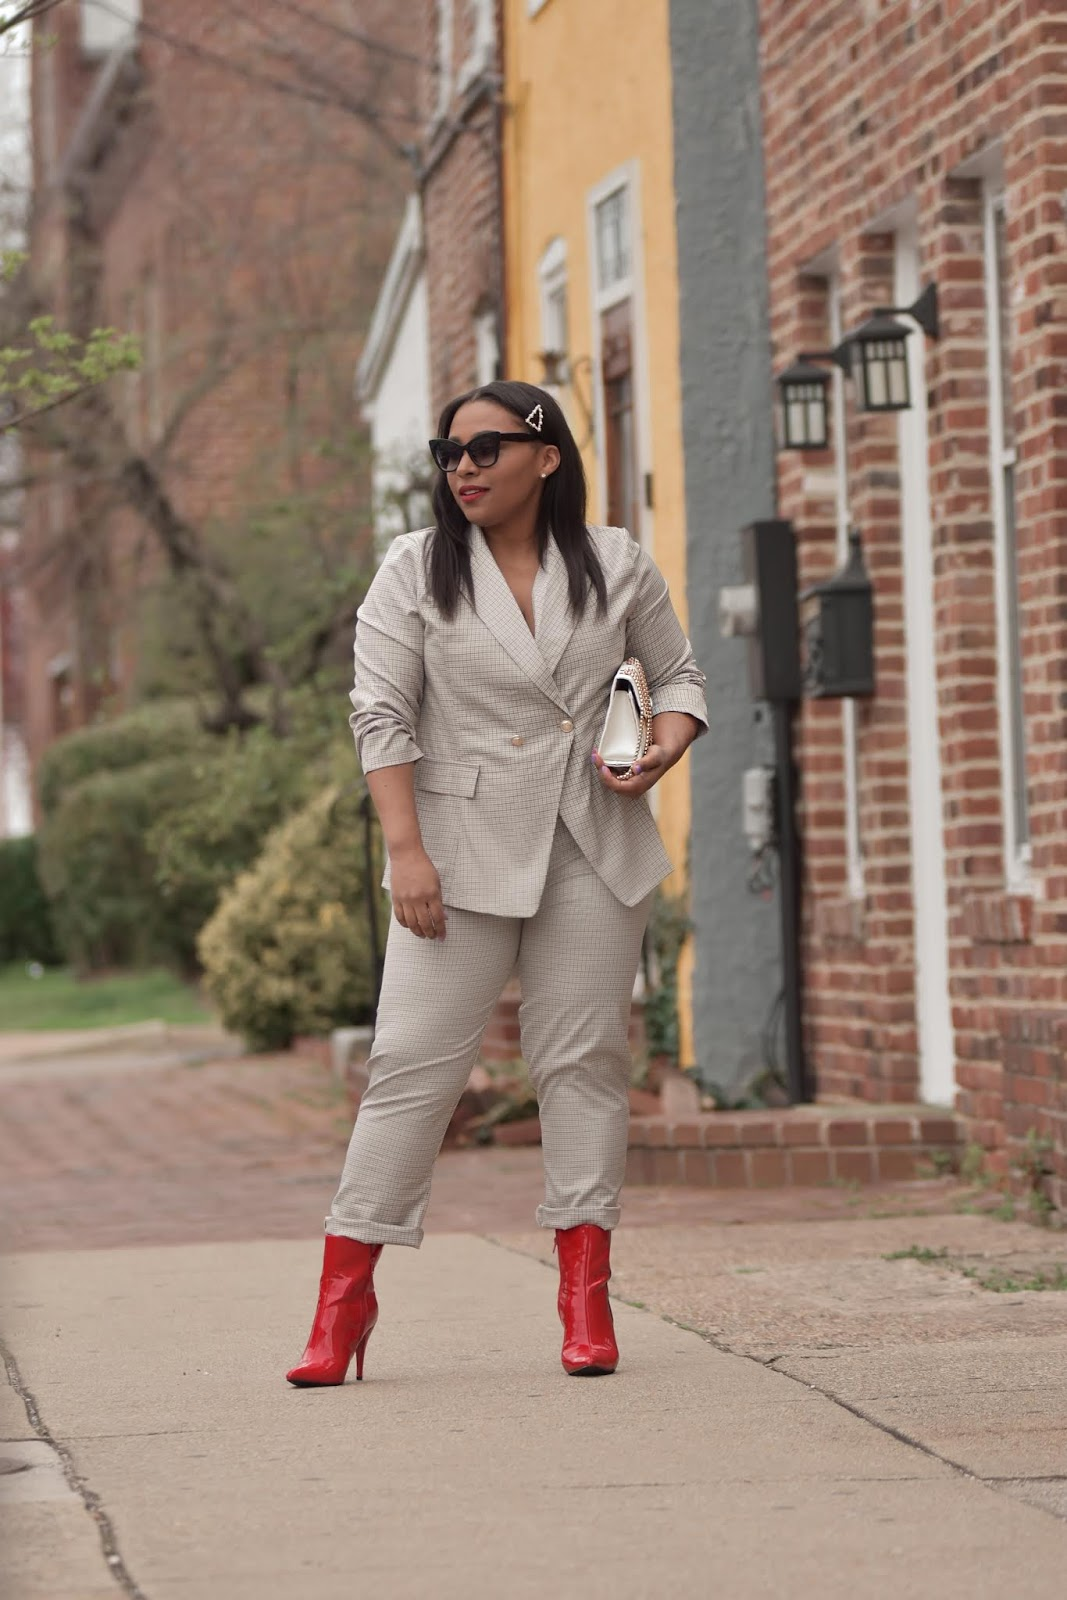 shein, shein reviews, matching separates, business chic, womens suit, two pieces suit, pattys kloset, outfit ideas for spring.